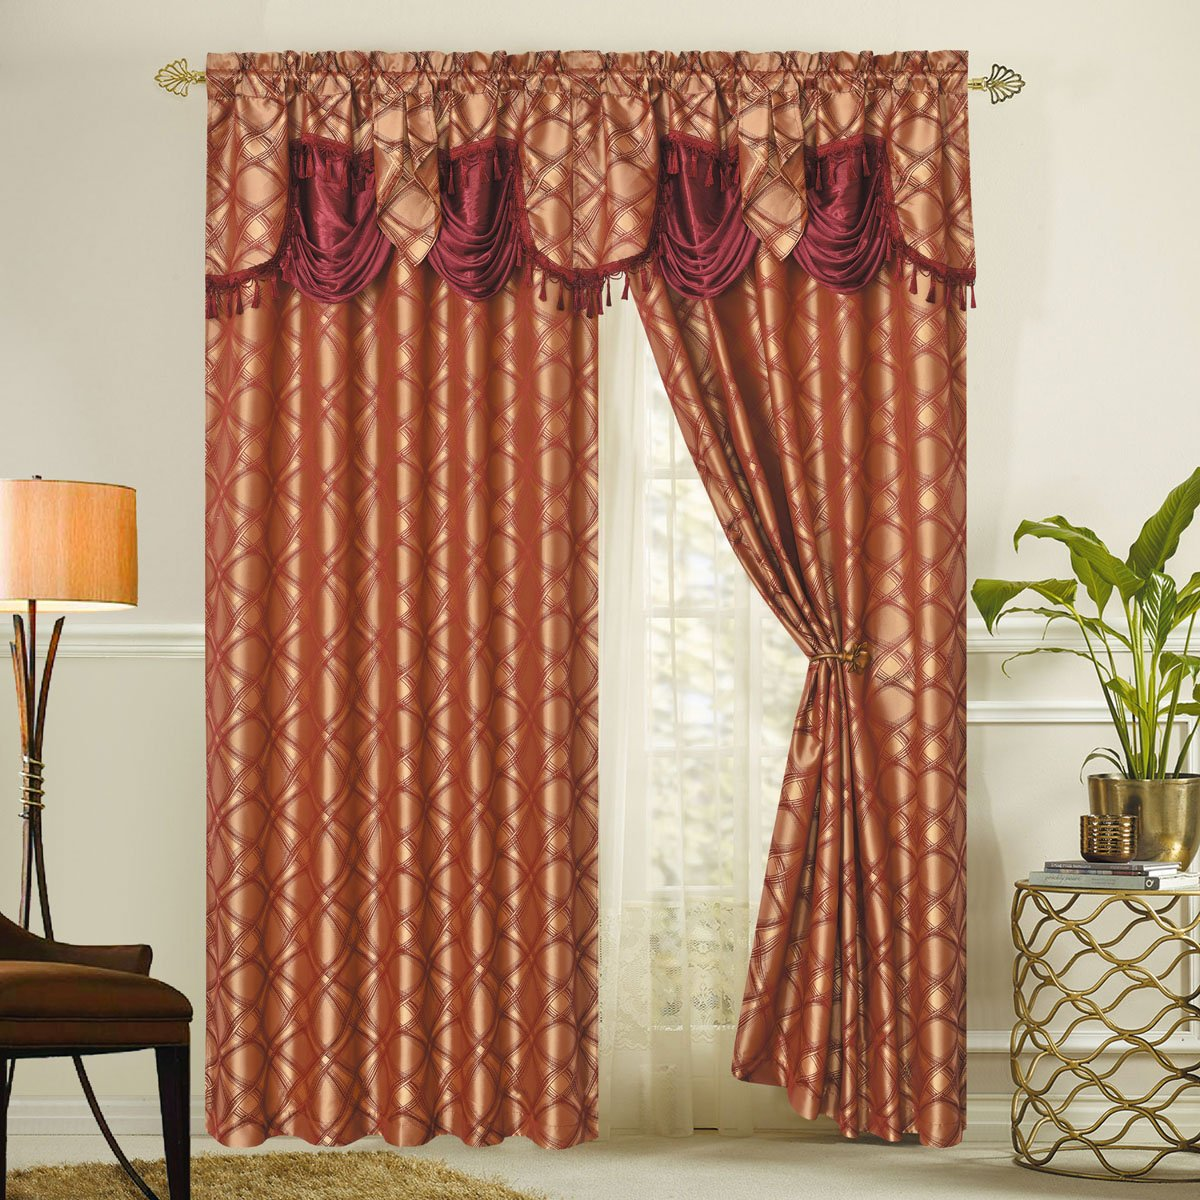 DANCE WITH WIND. Jacquard window curtain panel drape with attached fancy valance. 2pcs set. Each pc 54'' wide x 84'' drop with 18'' valance. (WINE)